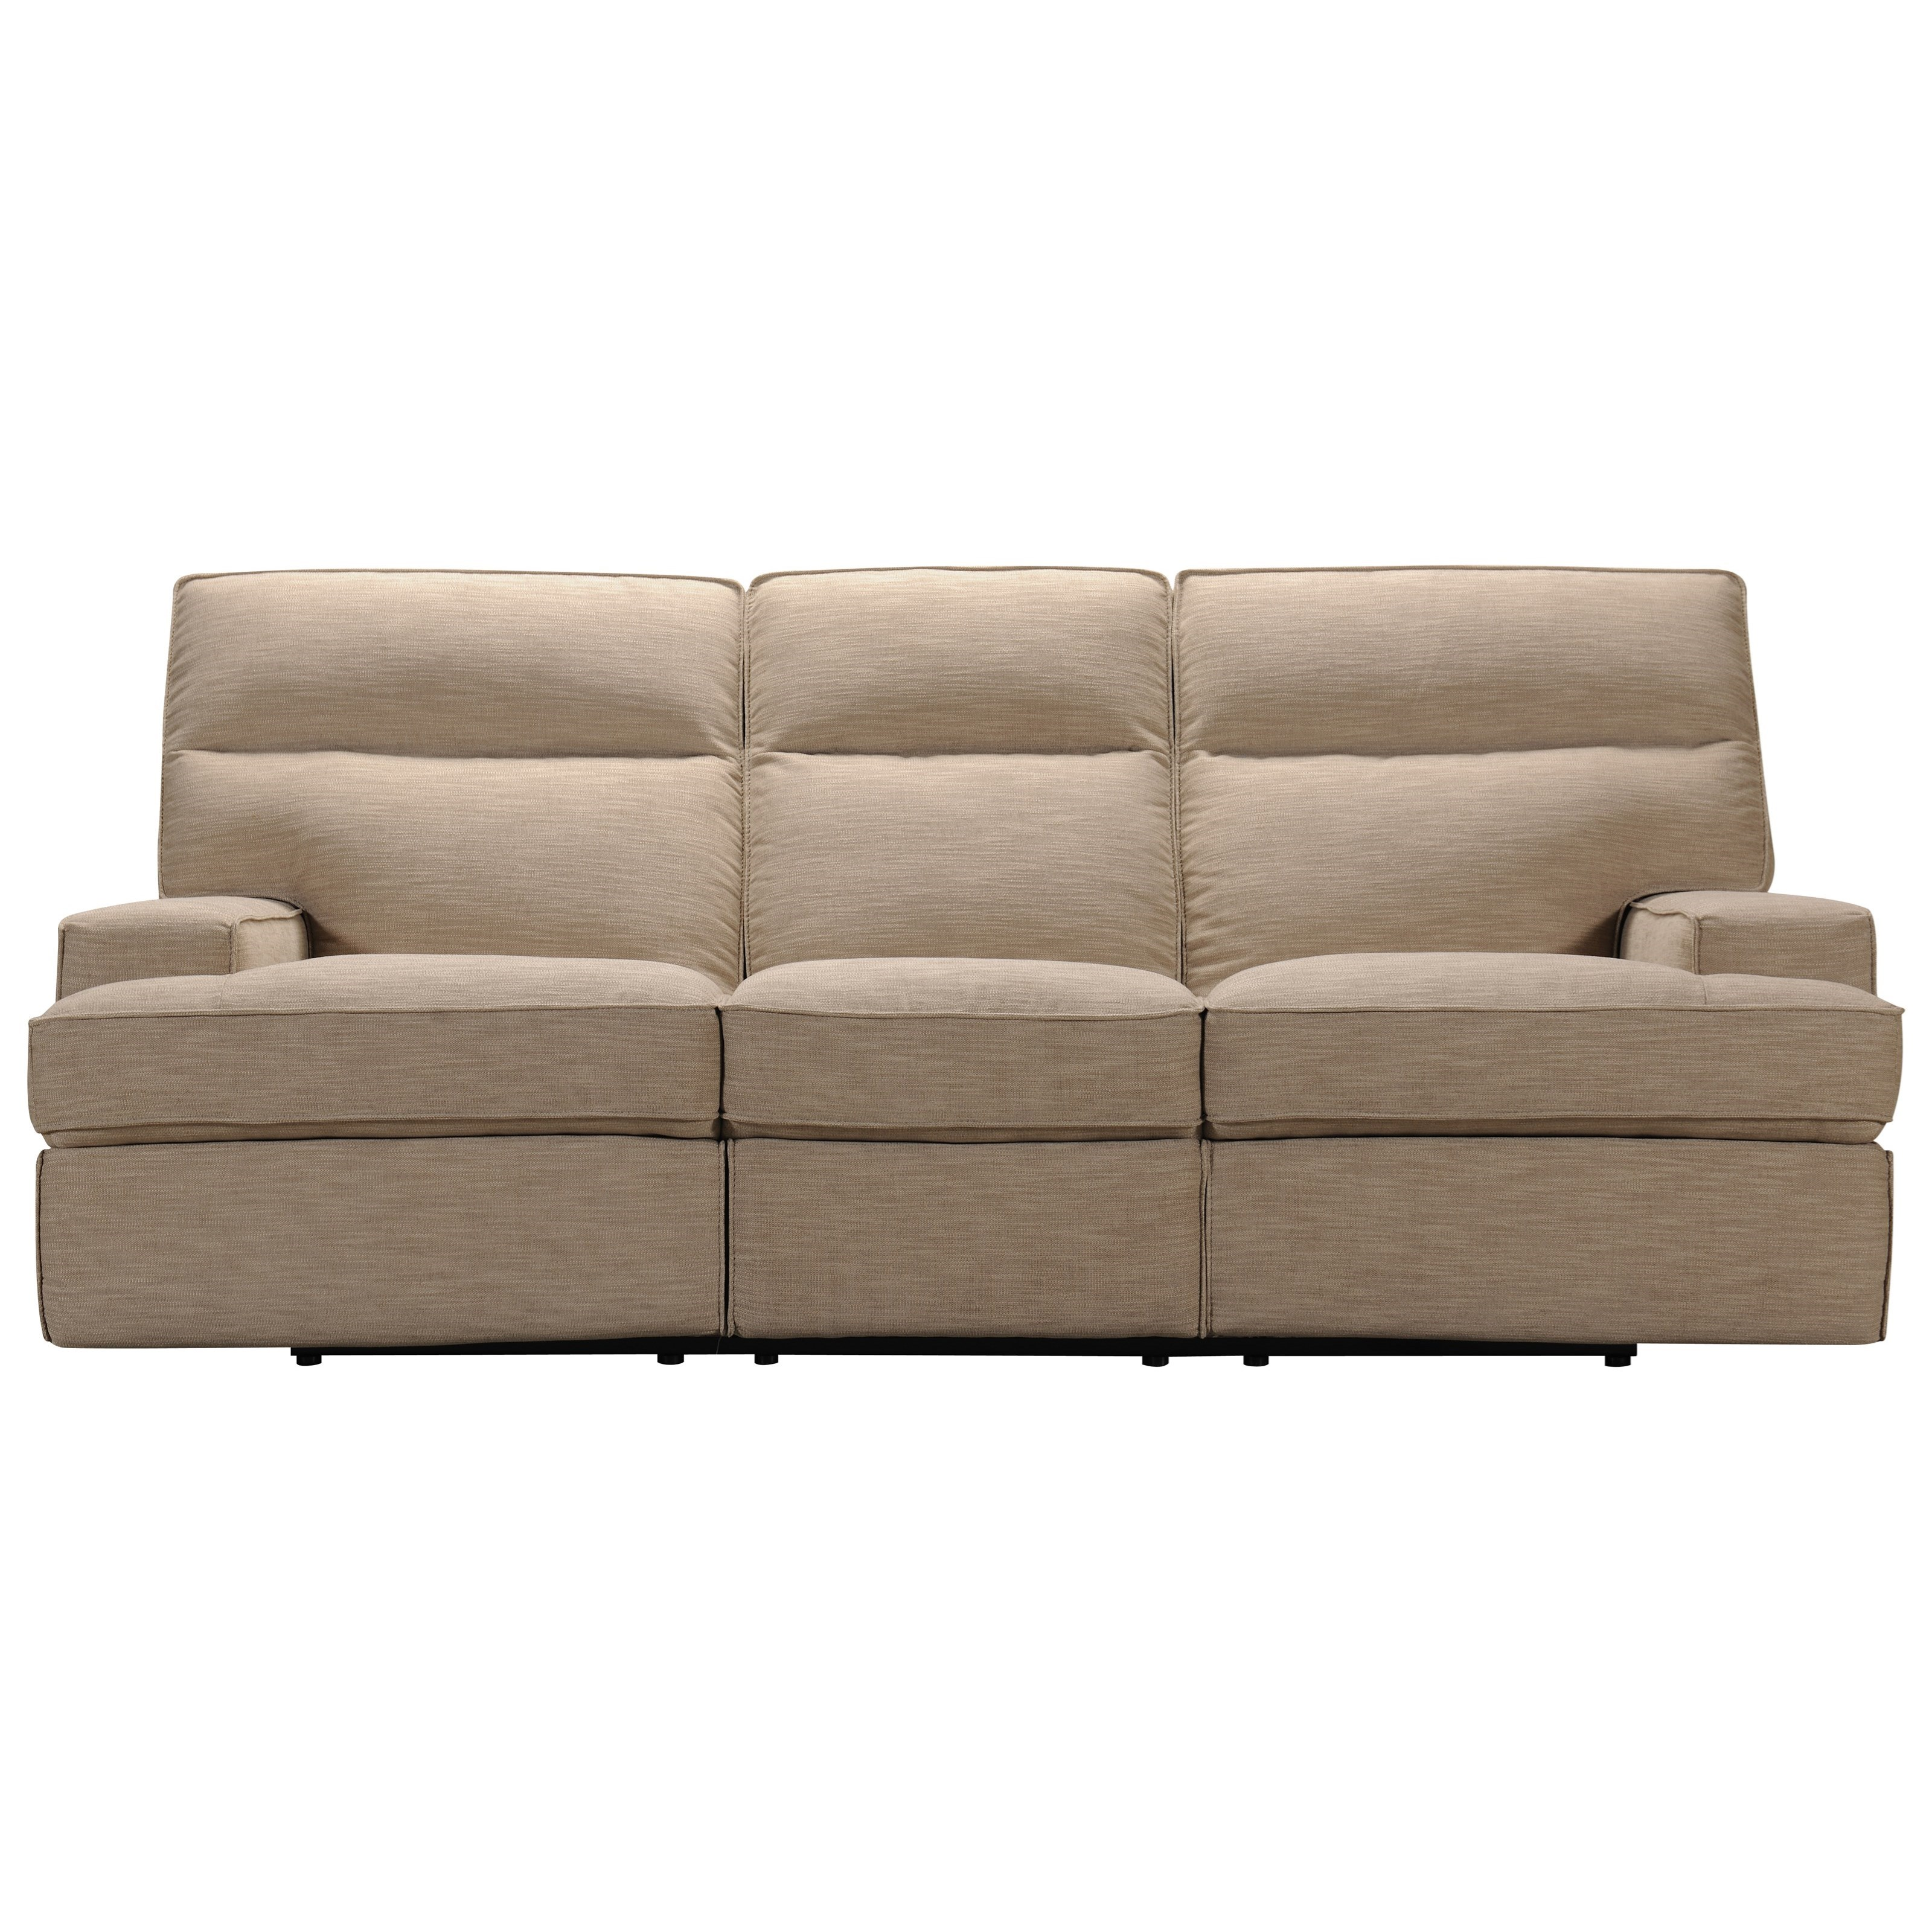 32146 Power Reclining Sofa with Power Headrests by Violino at Furniture Superstore - Rochester, MN